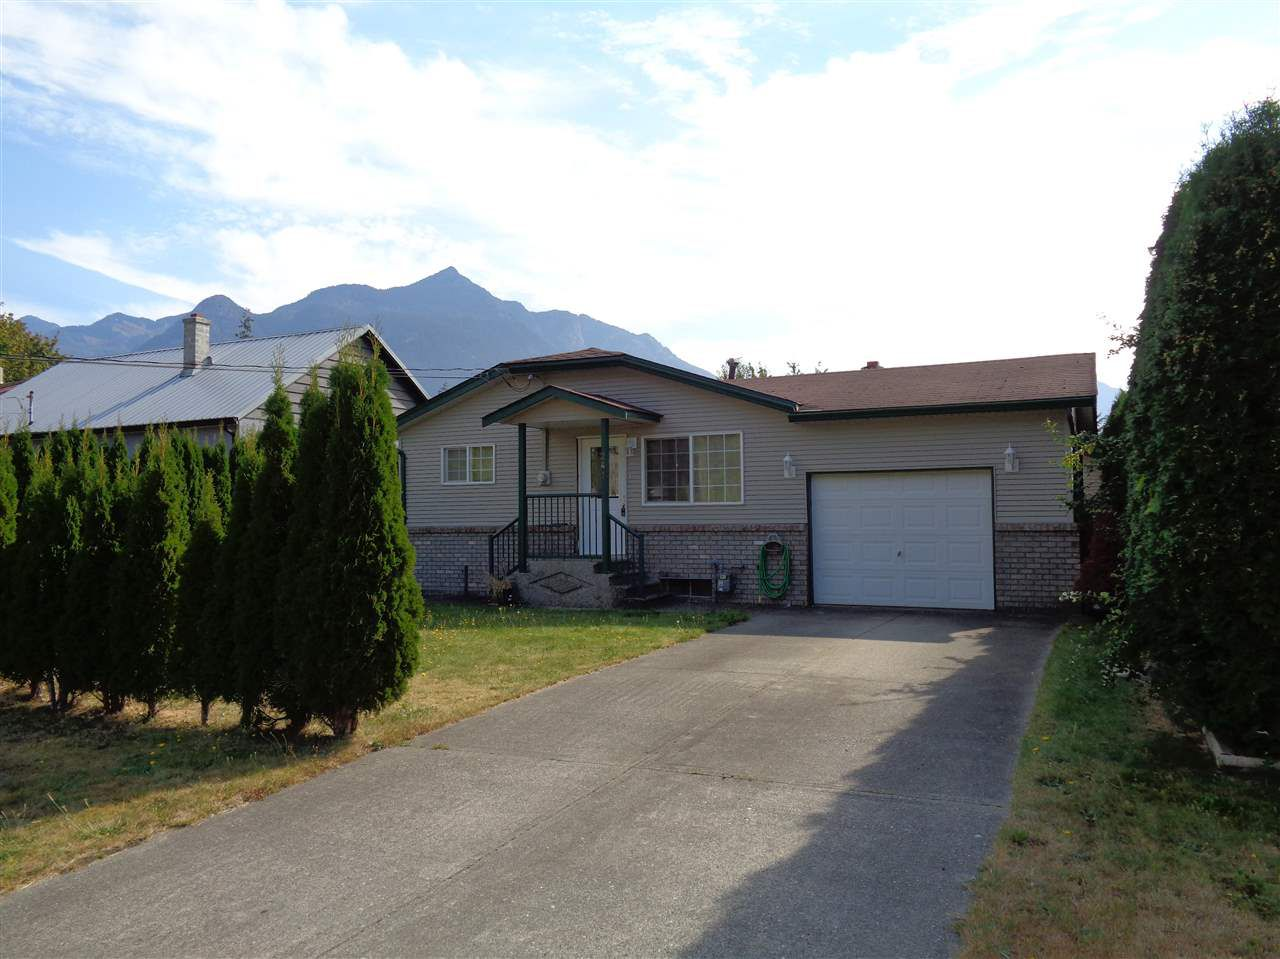 Main Photo: 241 CARIBOO Avenue in Hope: Hope Center House for sale : MLS®# R2104090